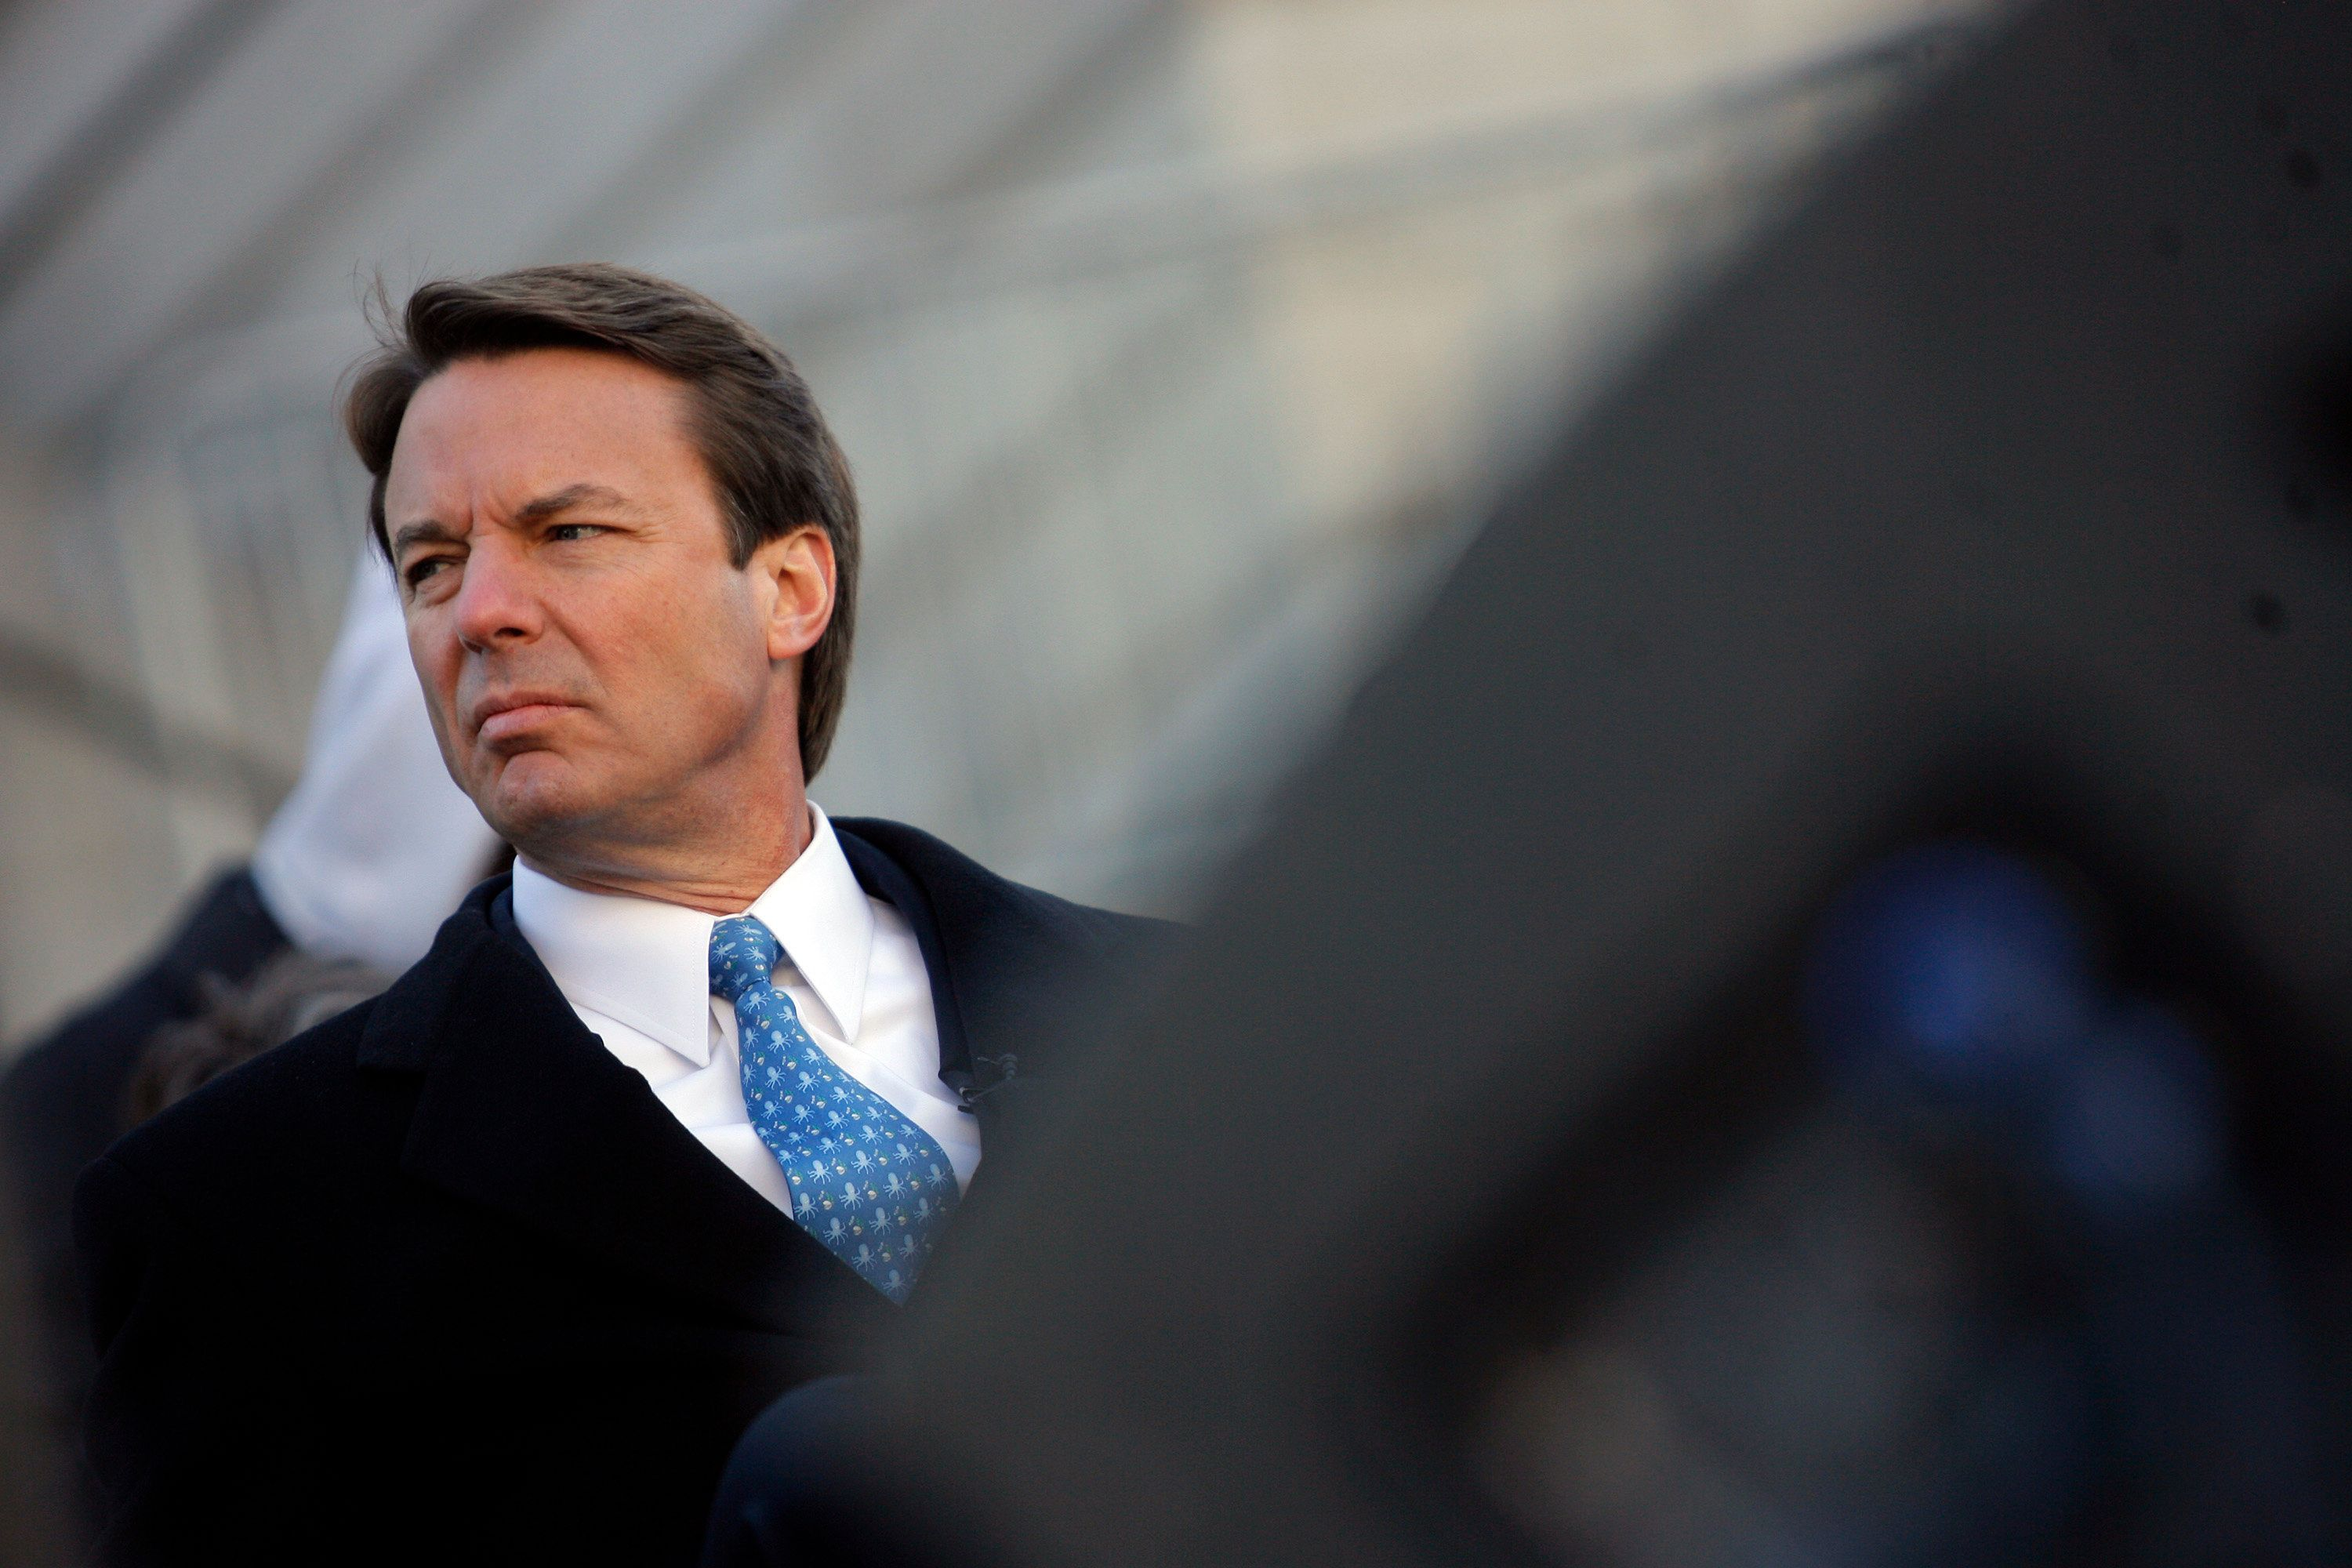 COLUMBIA, SC -  JANUARY 21:  U.S. Presidential candidate former U.S. Senator John Edwards (D-NC) waits to speak during a Martin Luther King Day rally at the state capitol January 21, 2008 in Columbia, South Carolina. Democratic presidential candidates were in the state campaigning Monday. (Photo by Eric Thayer/Getty Images)